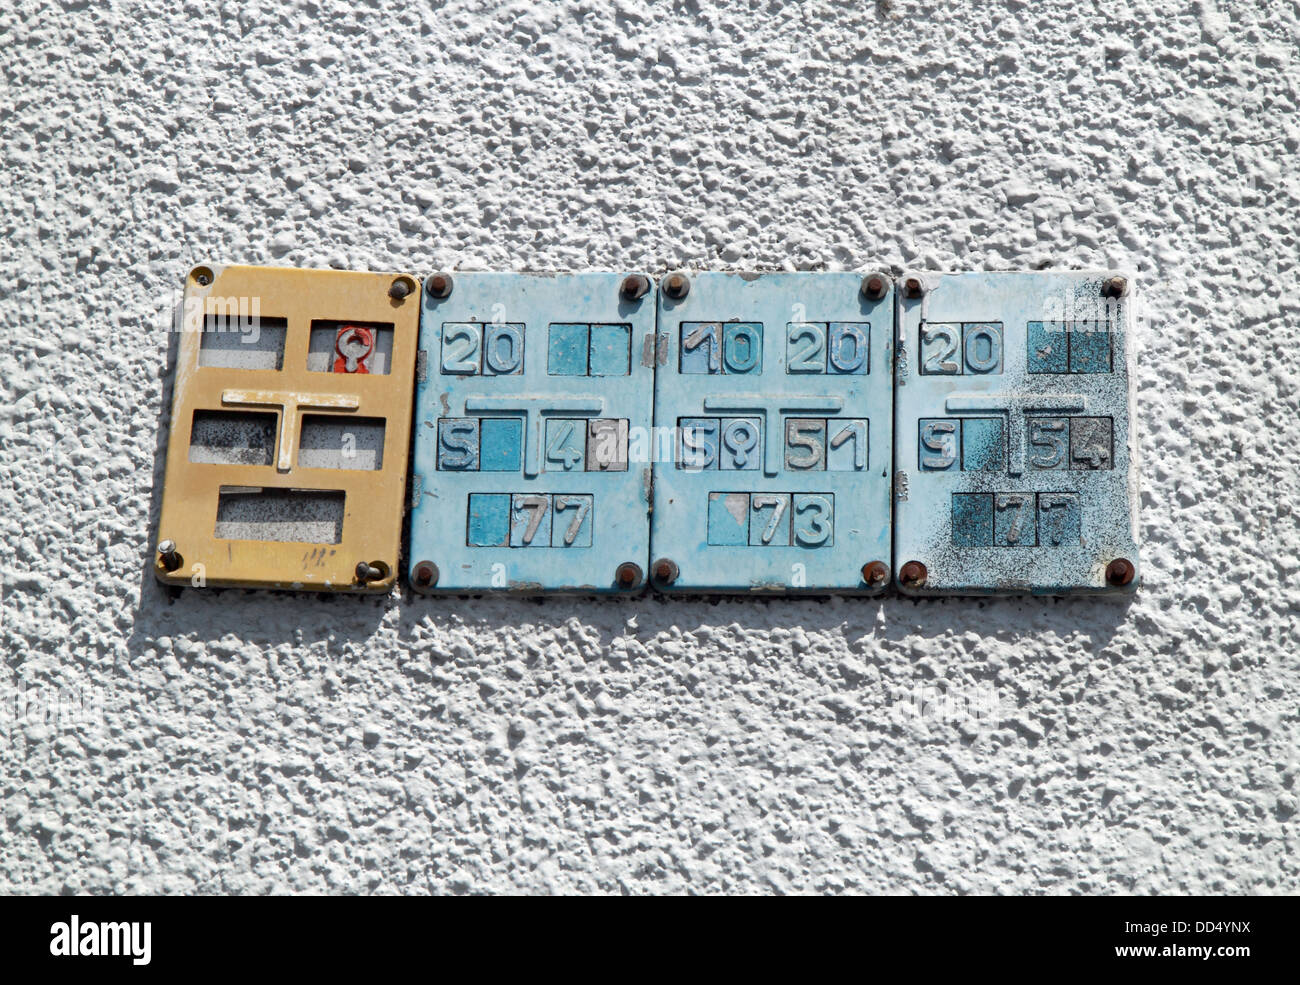 3 blue and one beige iron plates with numbers on, mounted on the outside of a house wall. - Stock Image